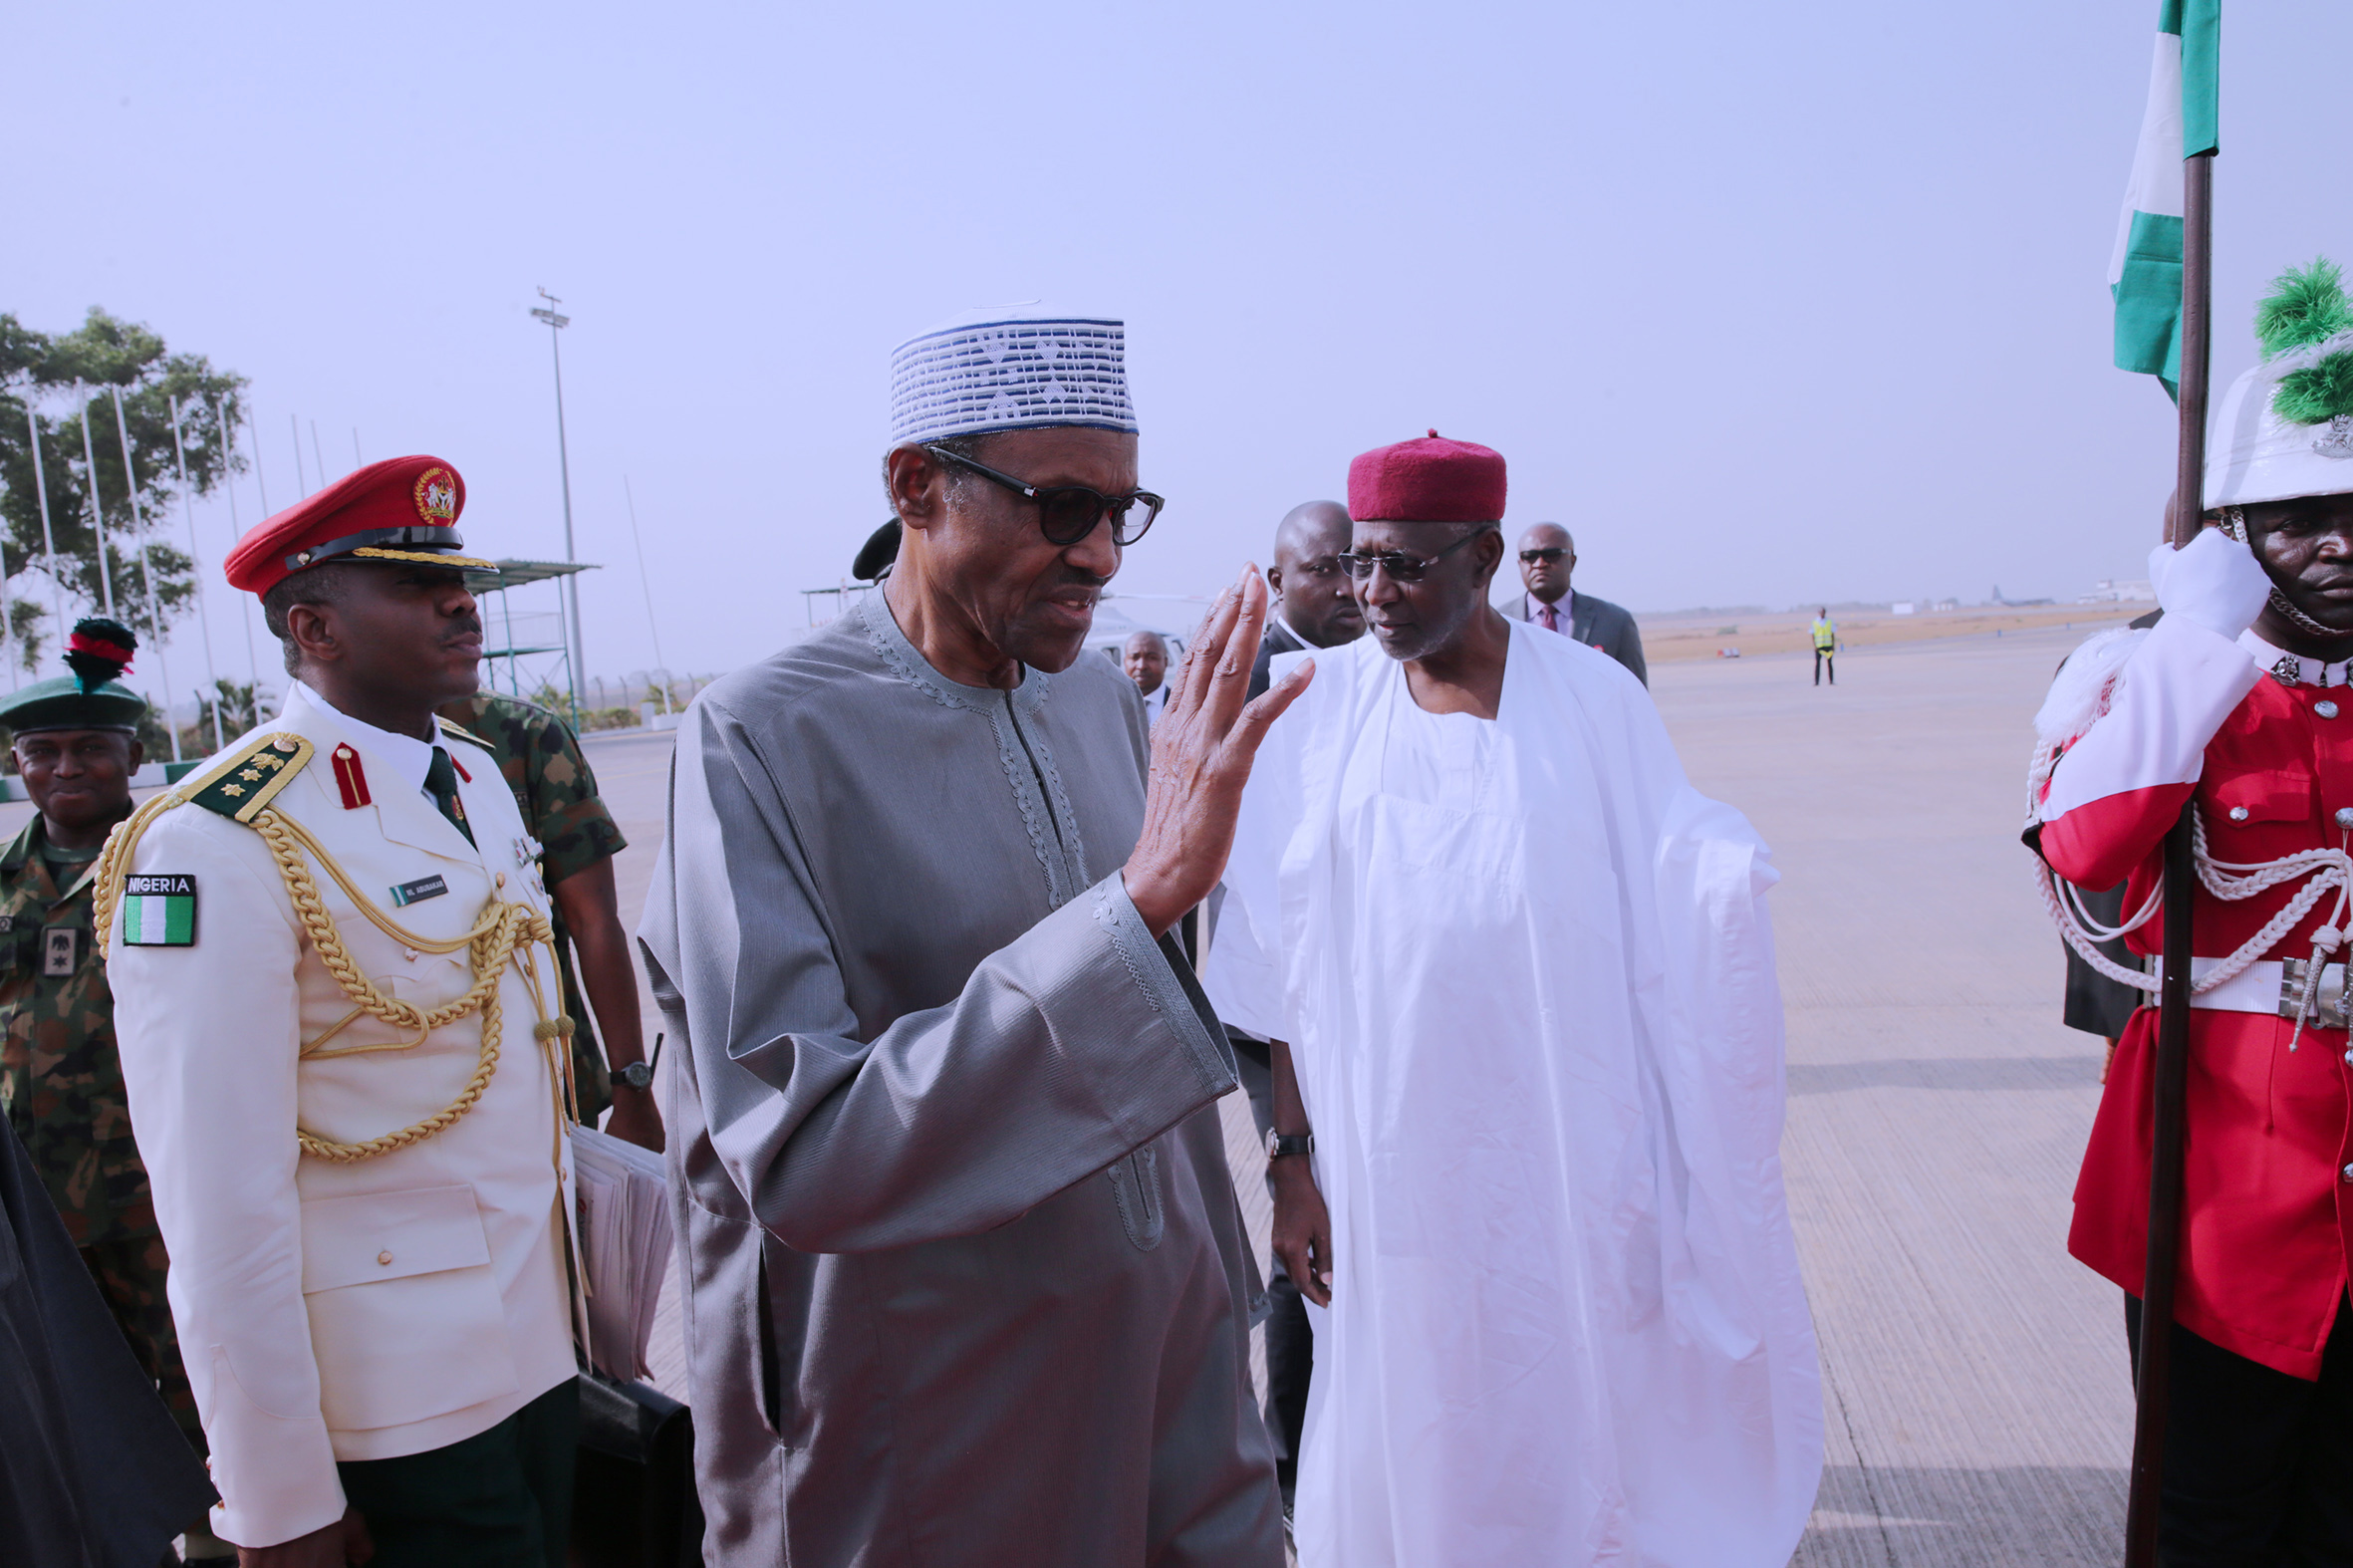 Breaking News: Buhari signs 8 bills into law, departs for AU summit in Addis Ababa